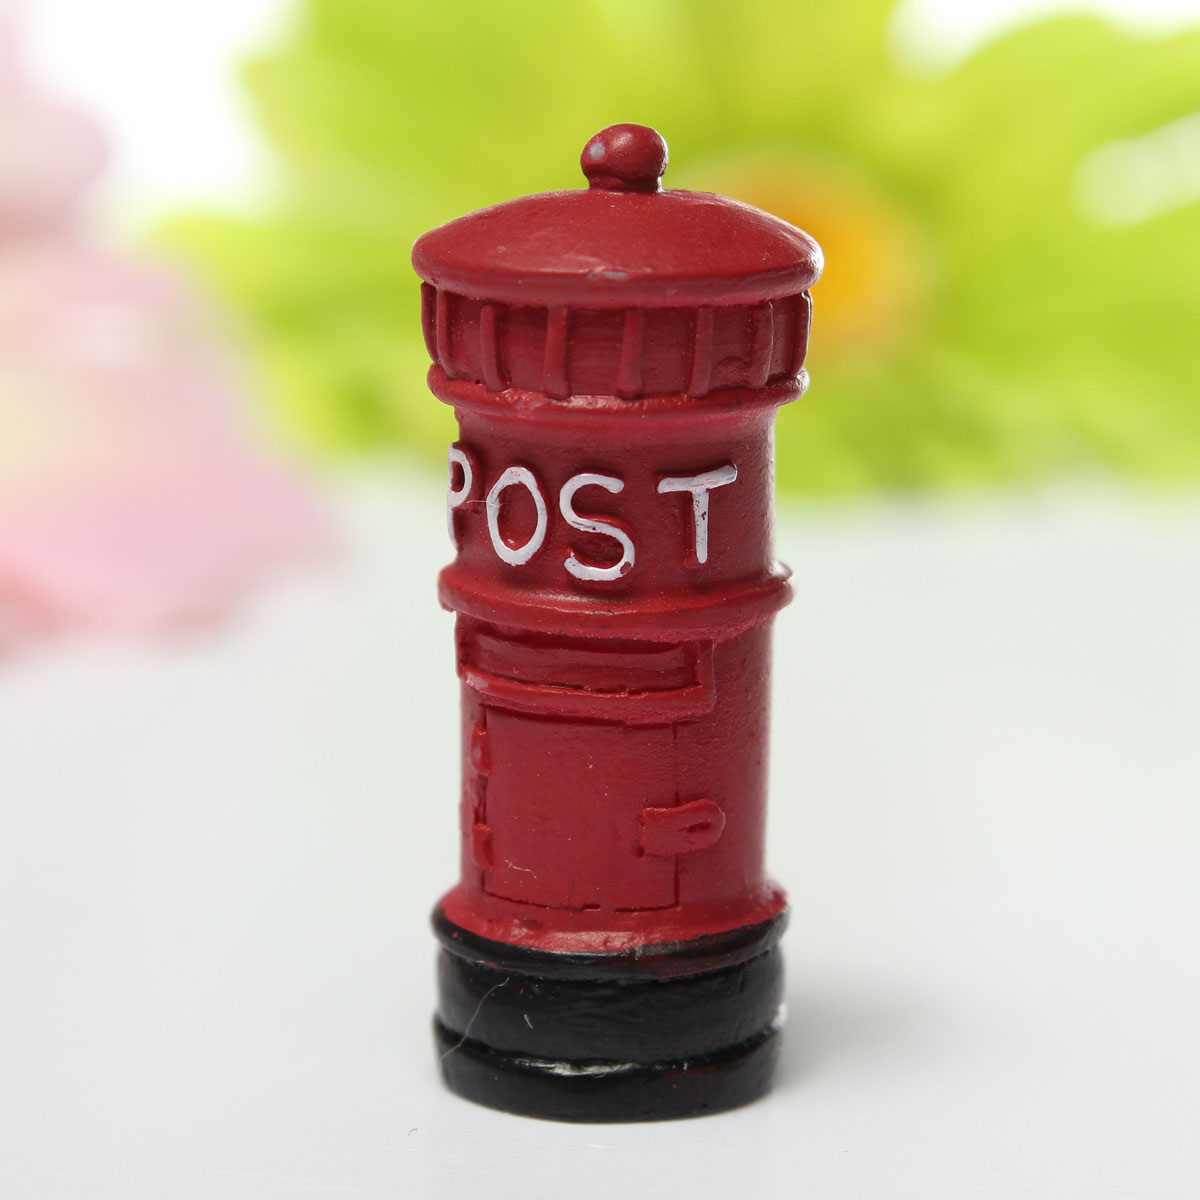 Miniature Europe Retro Postbox Fairy Garden Micro Dollhouse Decoration Ornament